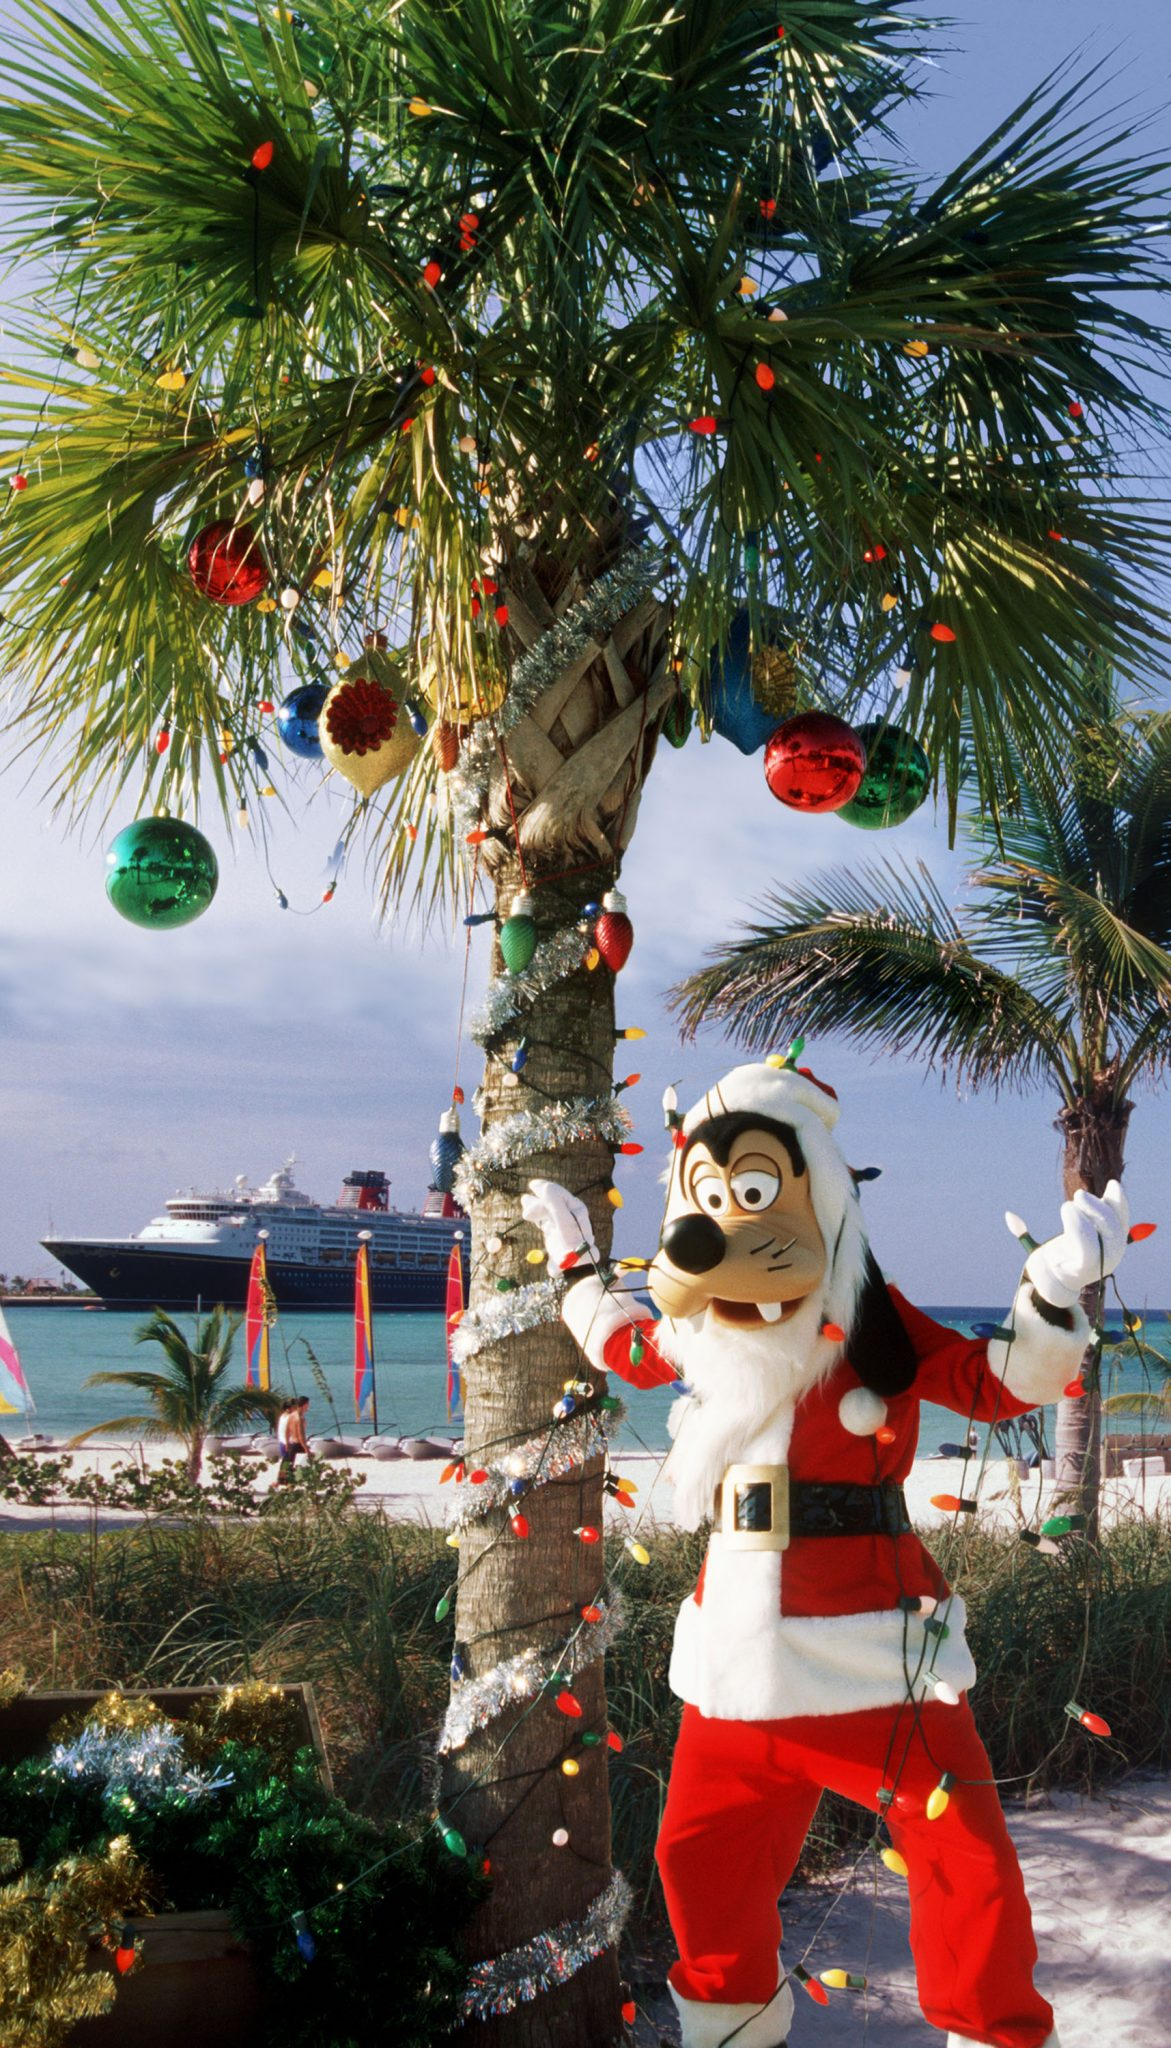 ResortLoop.com Episode 496 – Christmas On A Disney Cruise